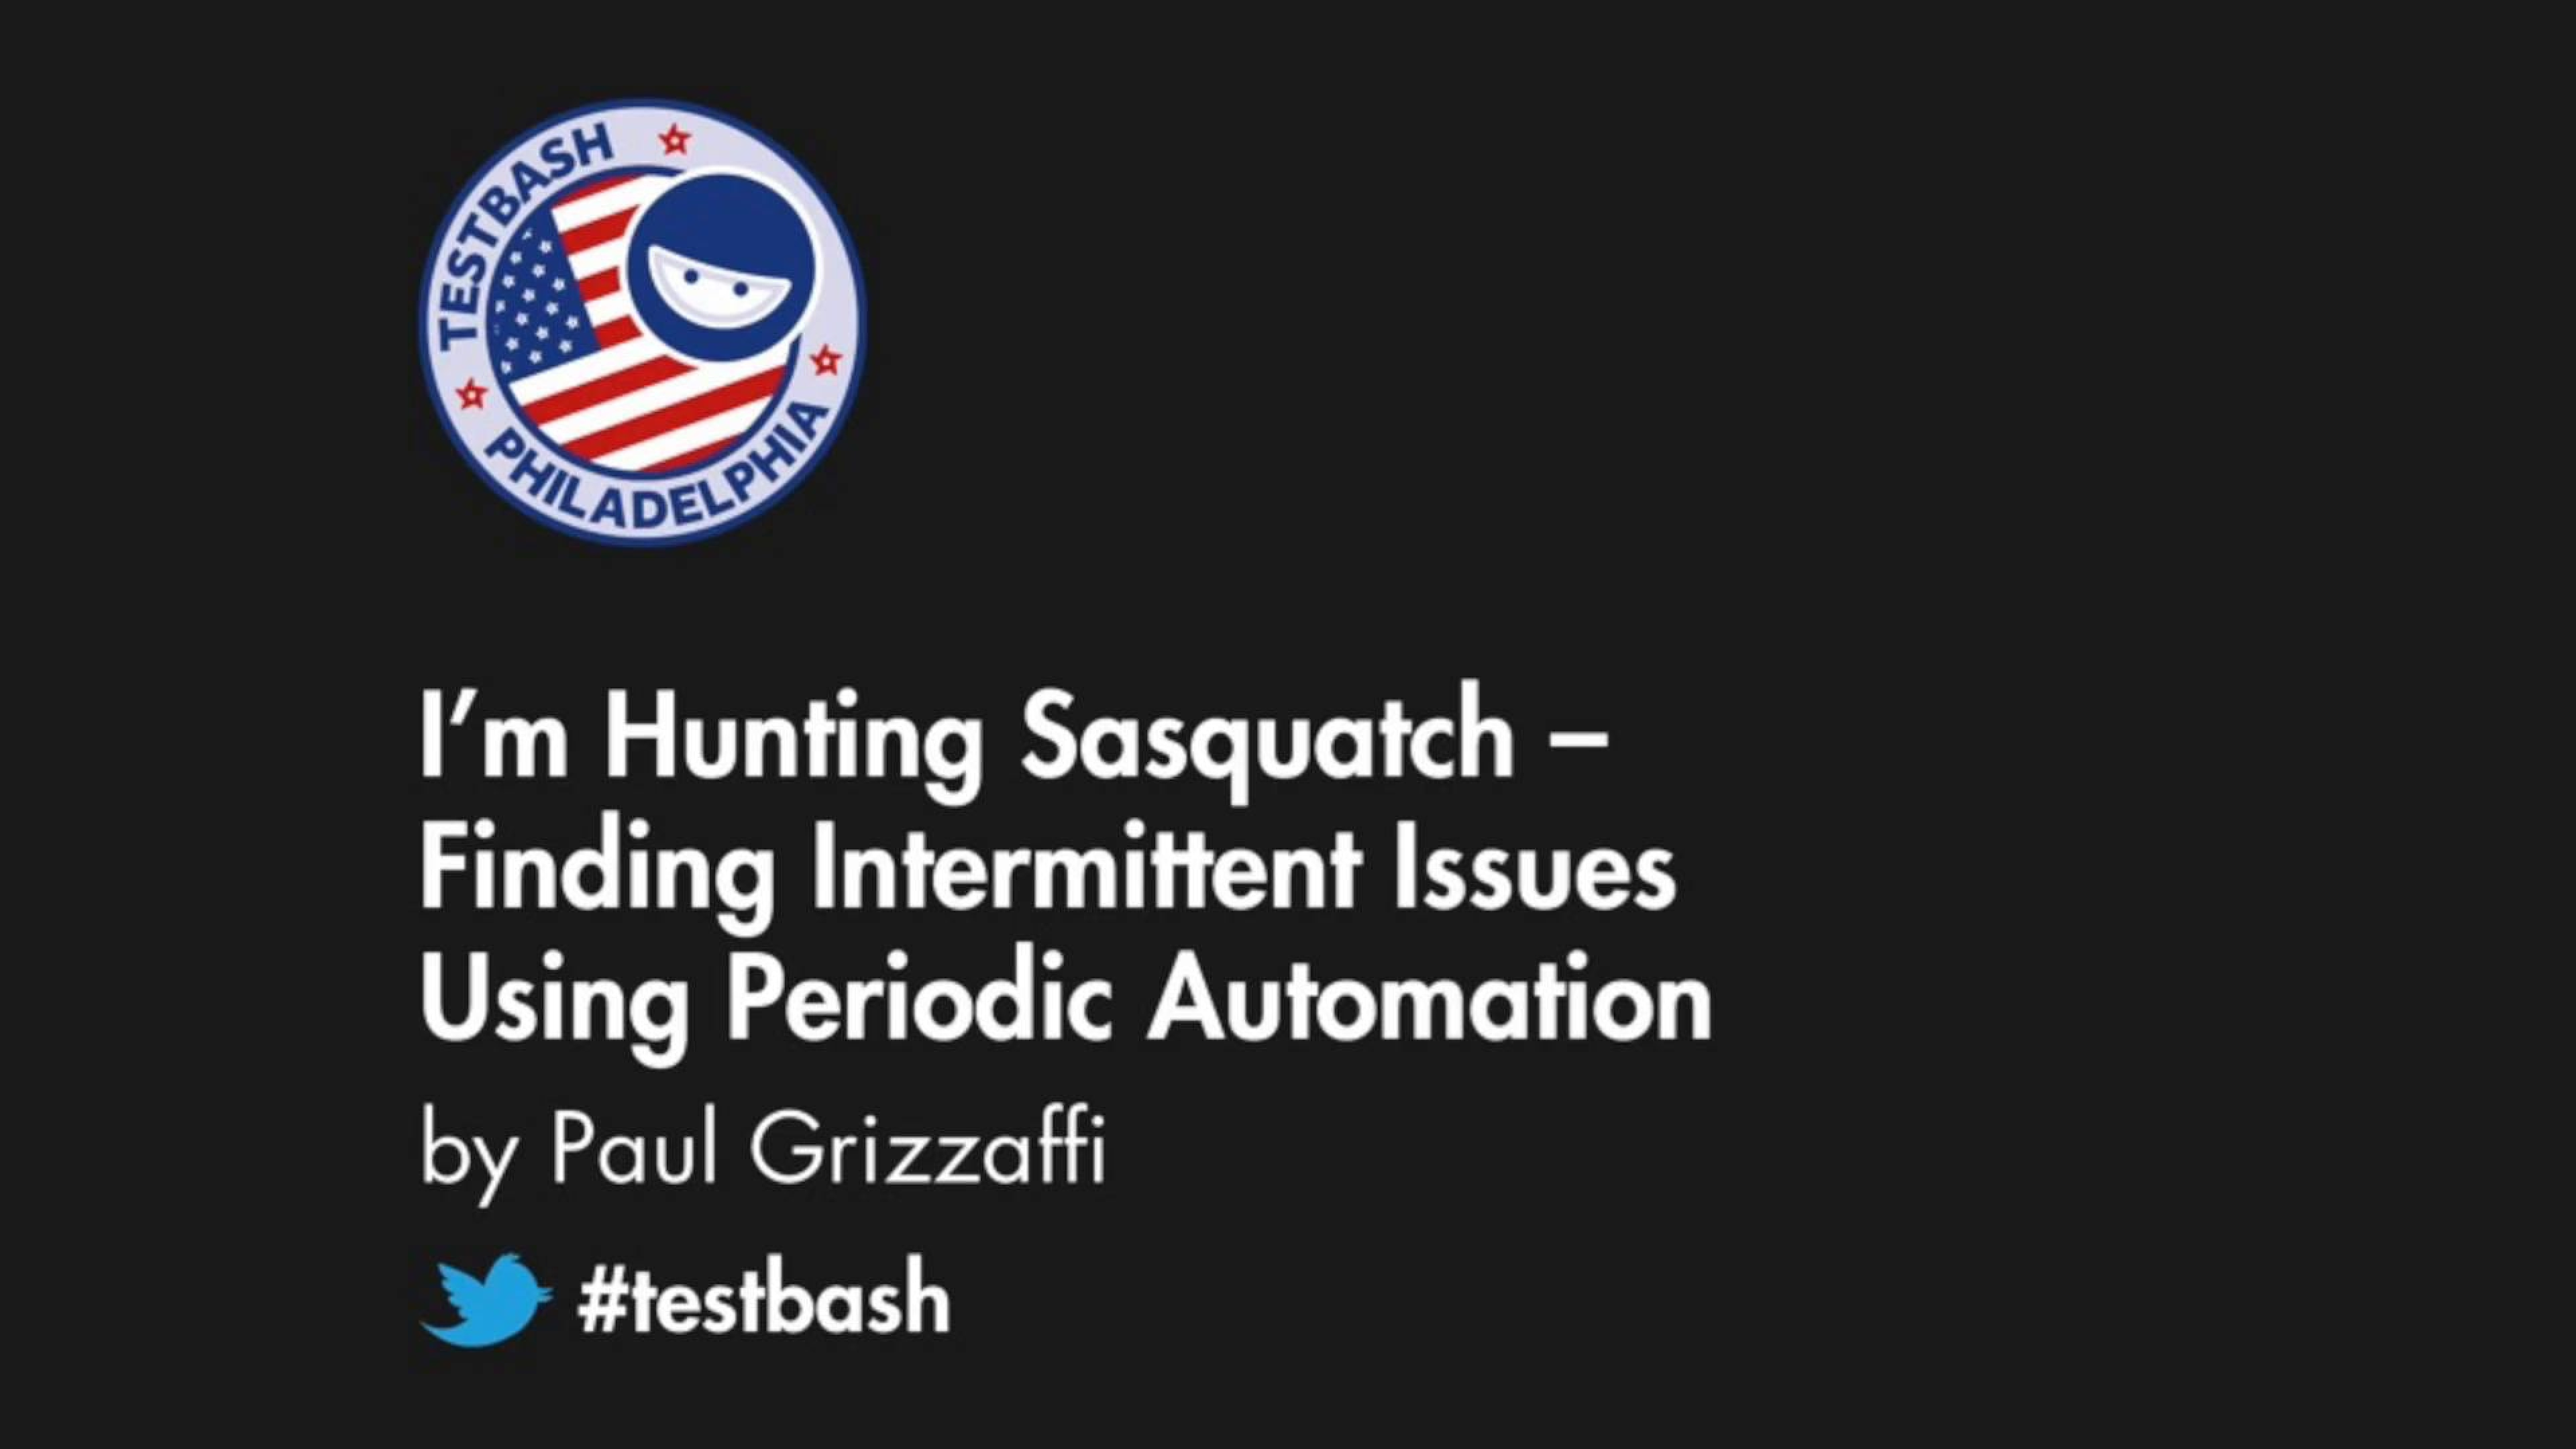 I'm Hunting Sasquatch:  Finding Intermittent Issues Using Periodic Automation - Paul Grizzaffi